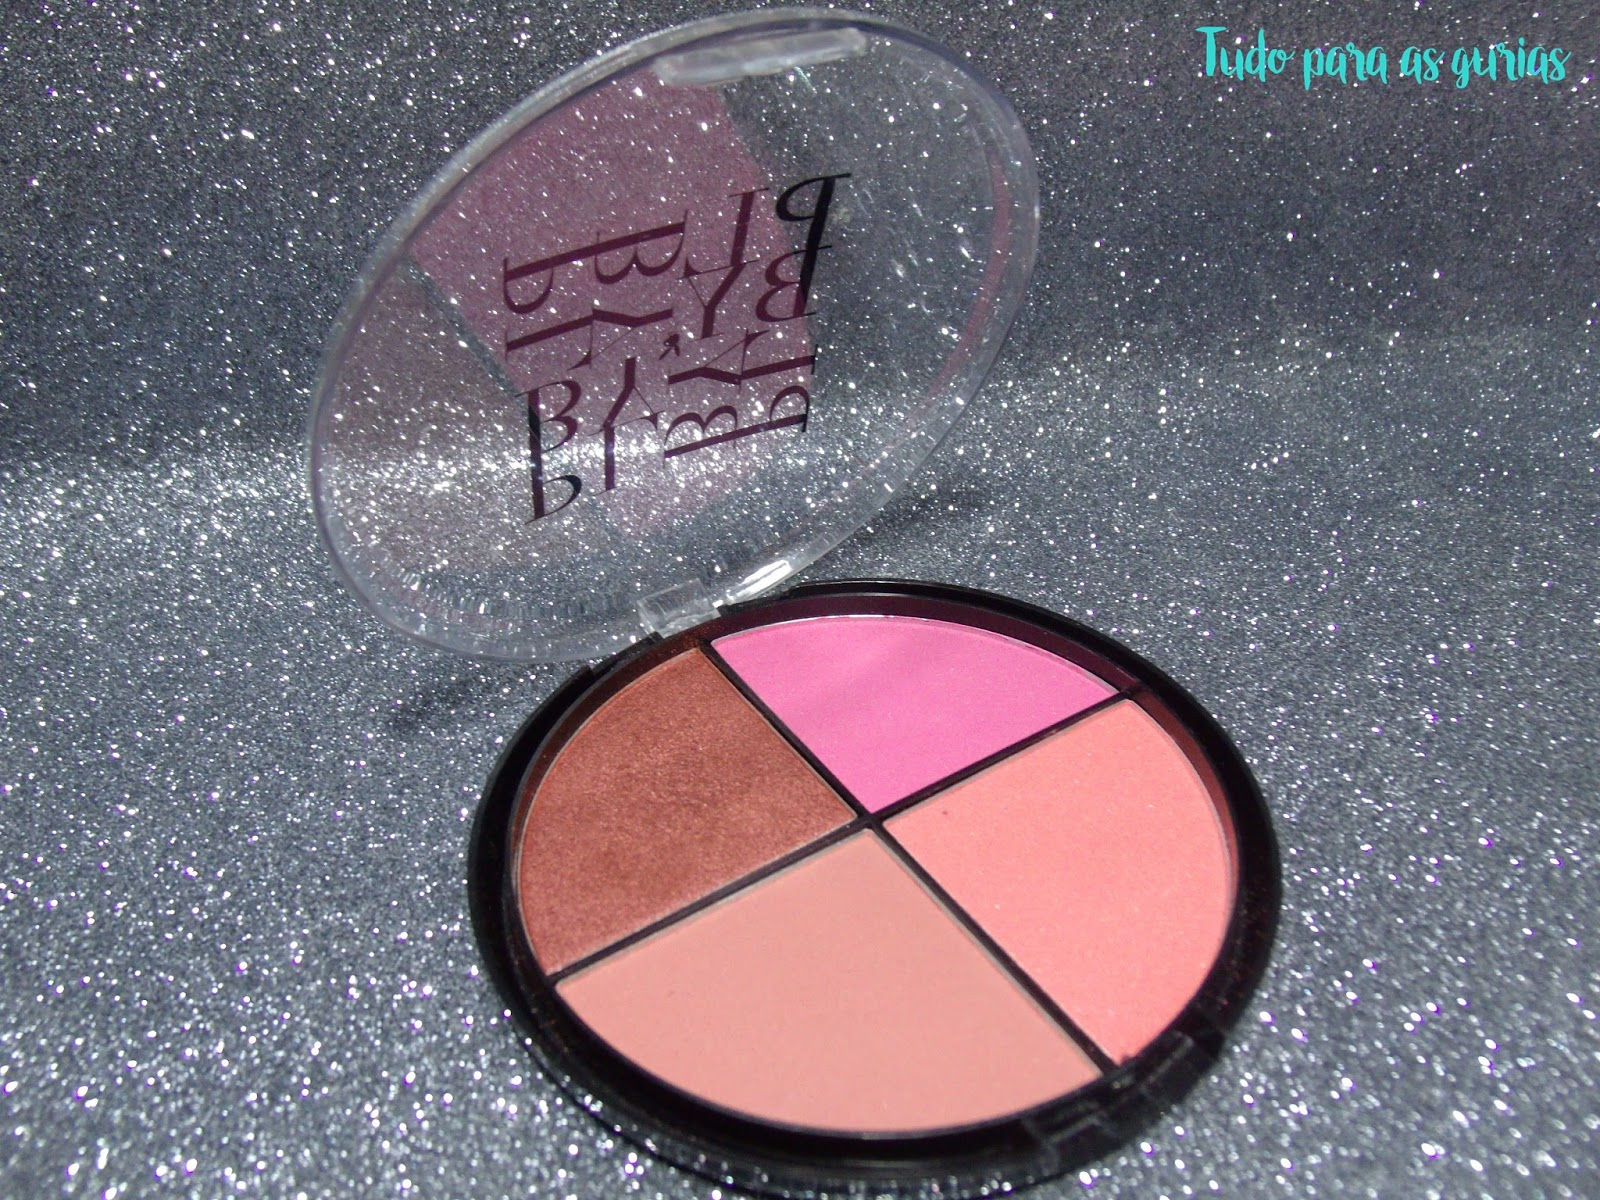 quarteto de blush; playboy make up; maquiagens; blush